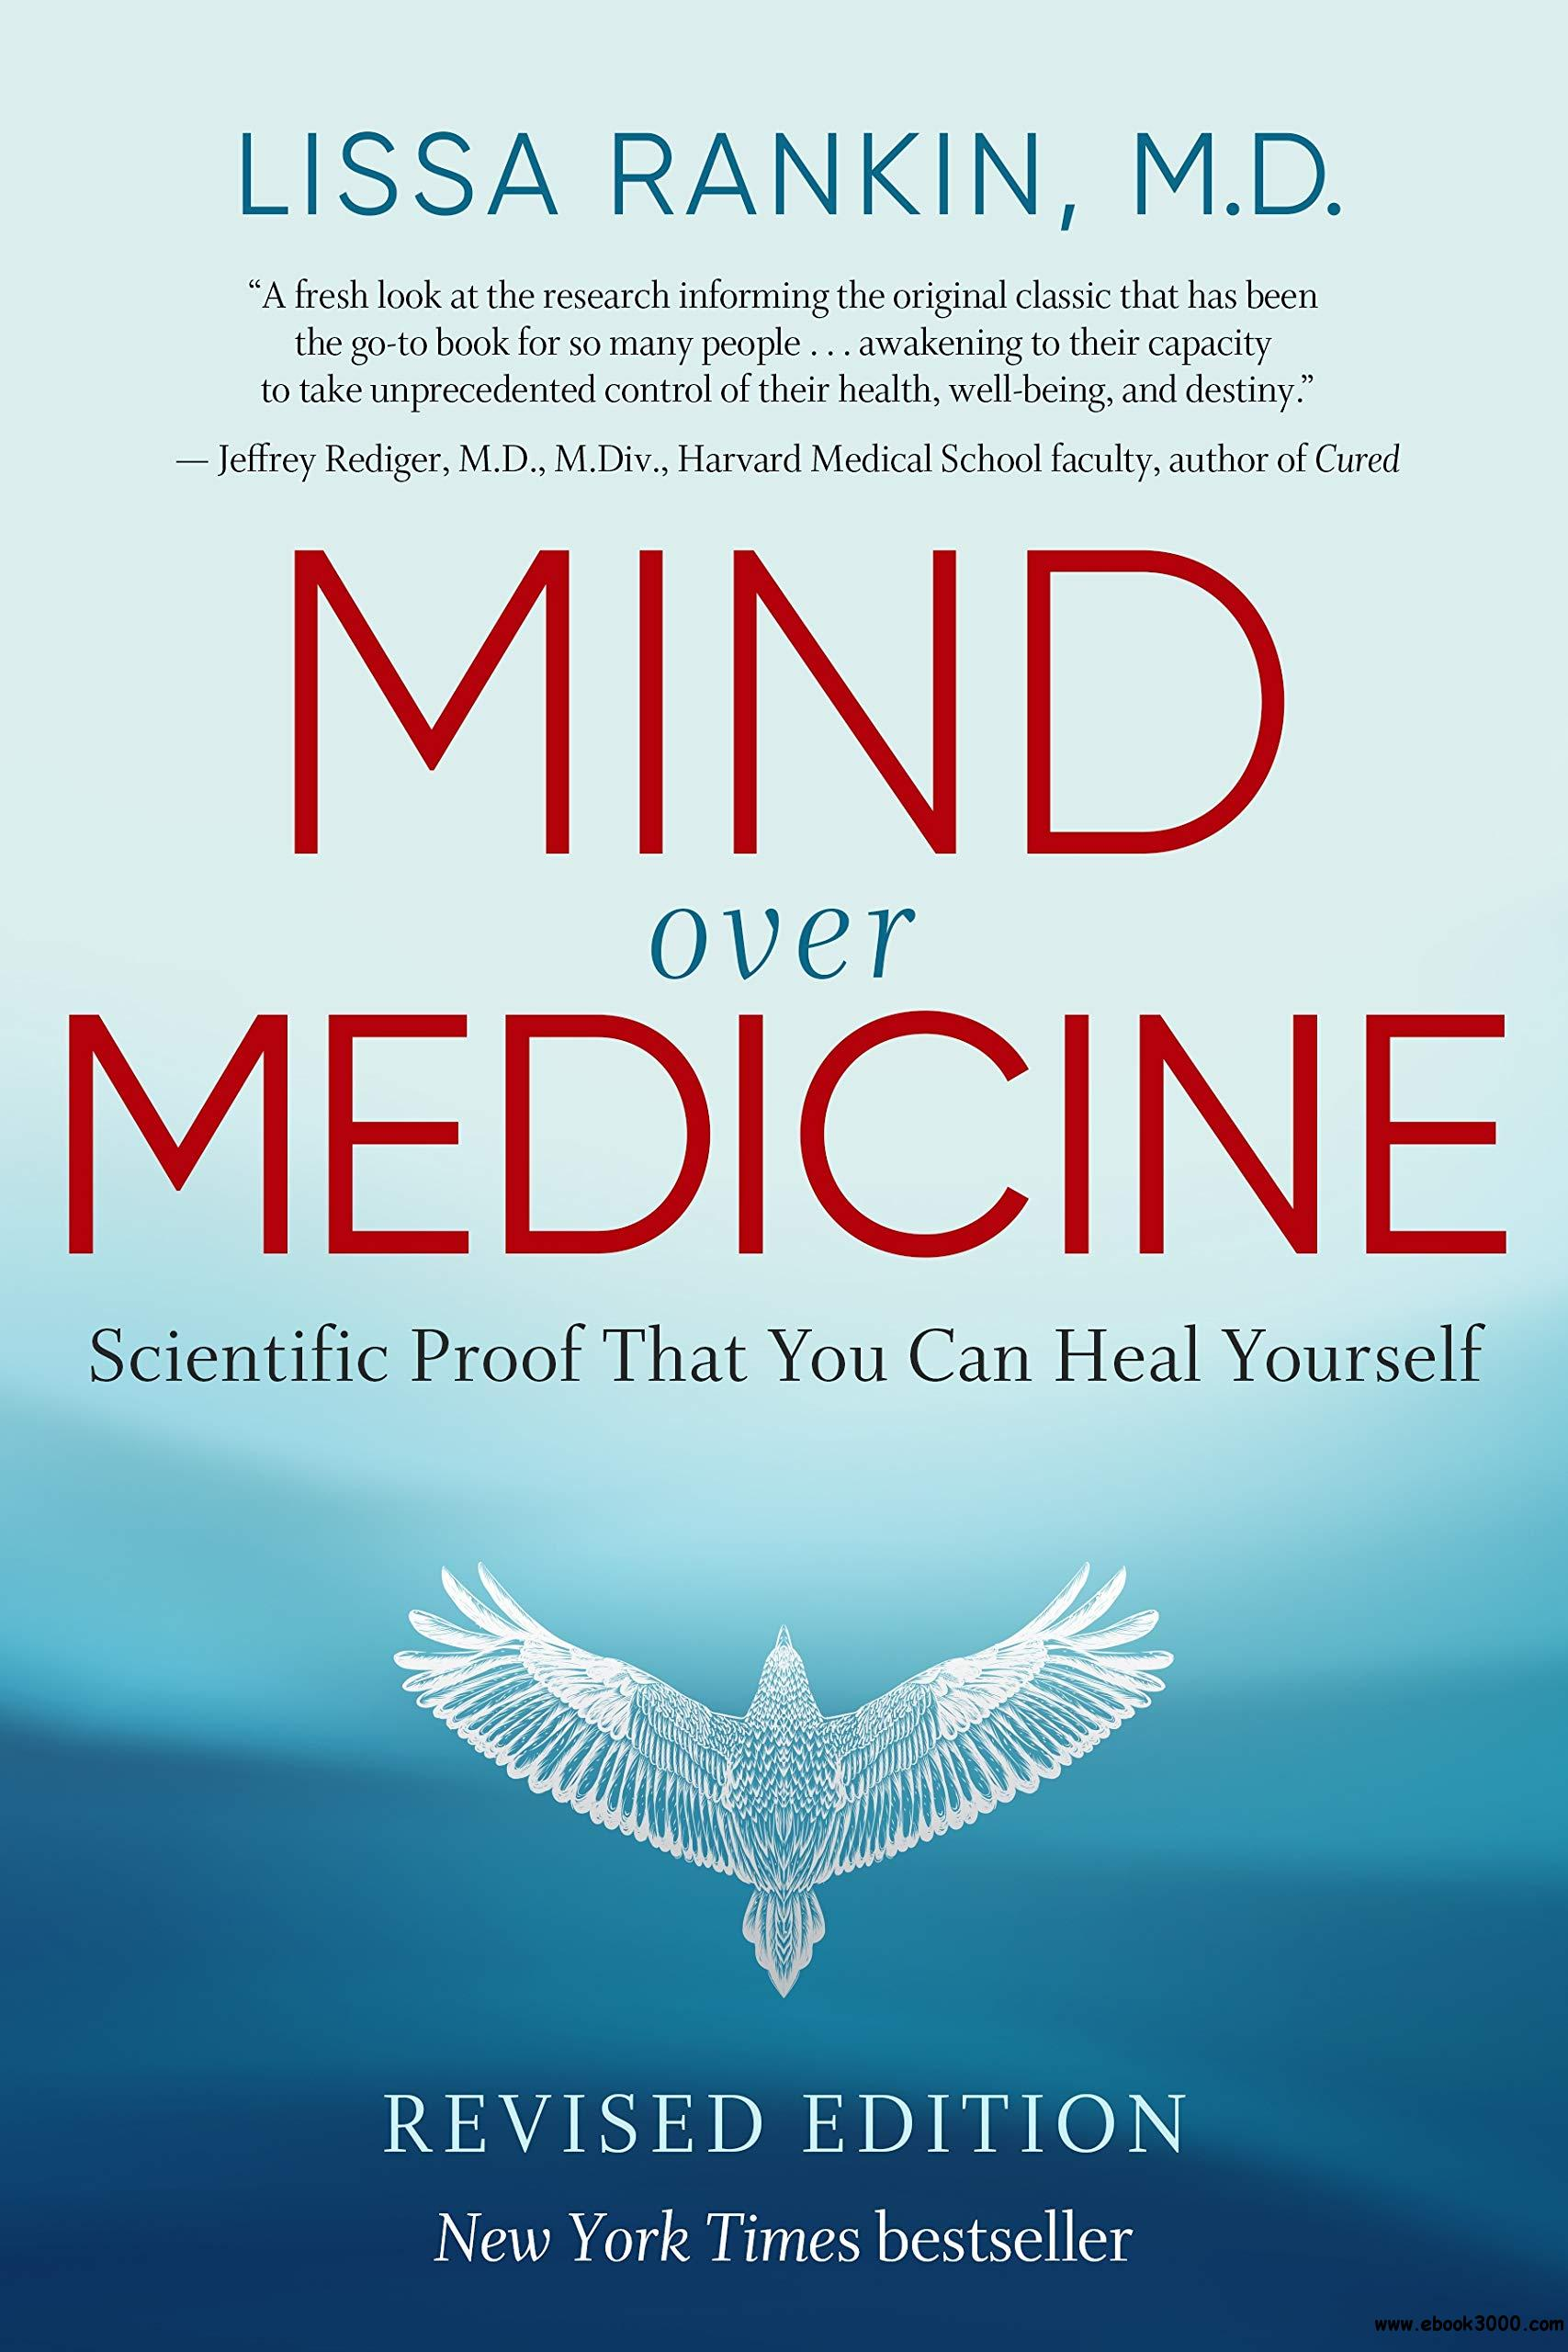 Mind Over Medicine: Scientific Proof That You Can Heal Yourself, Revised Edition